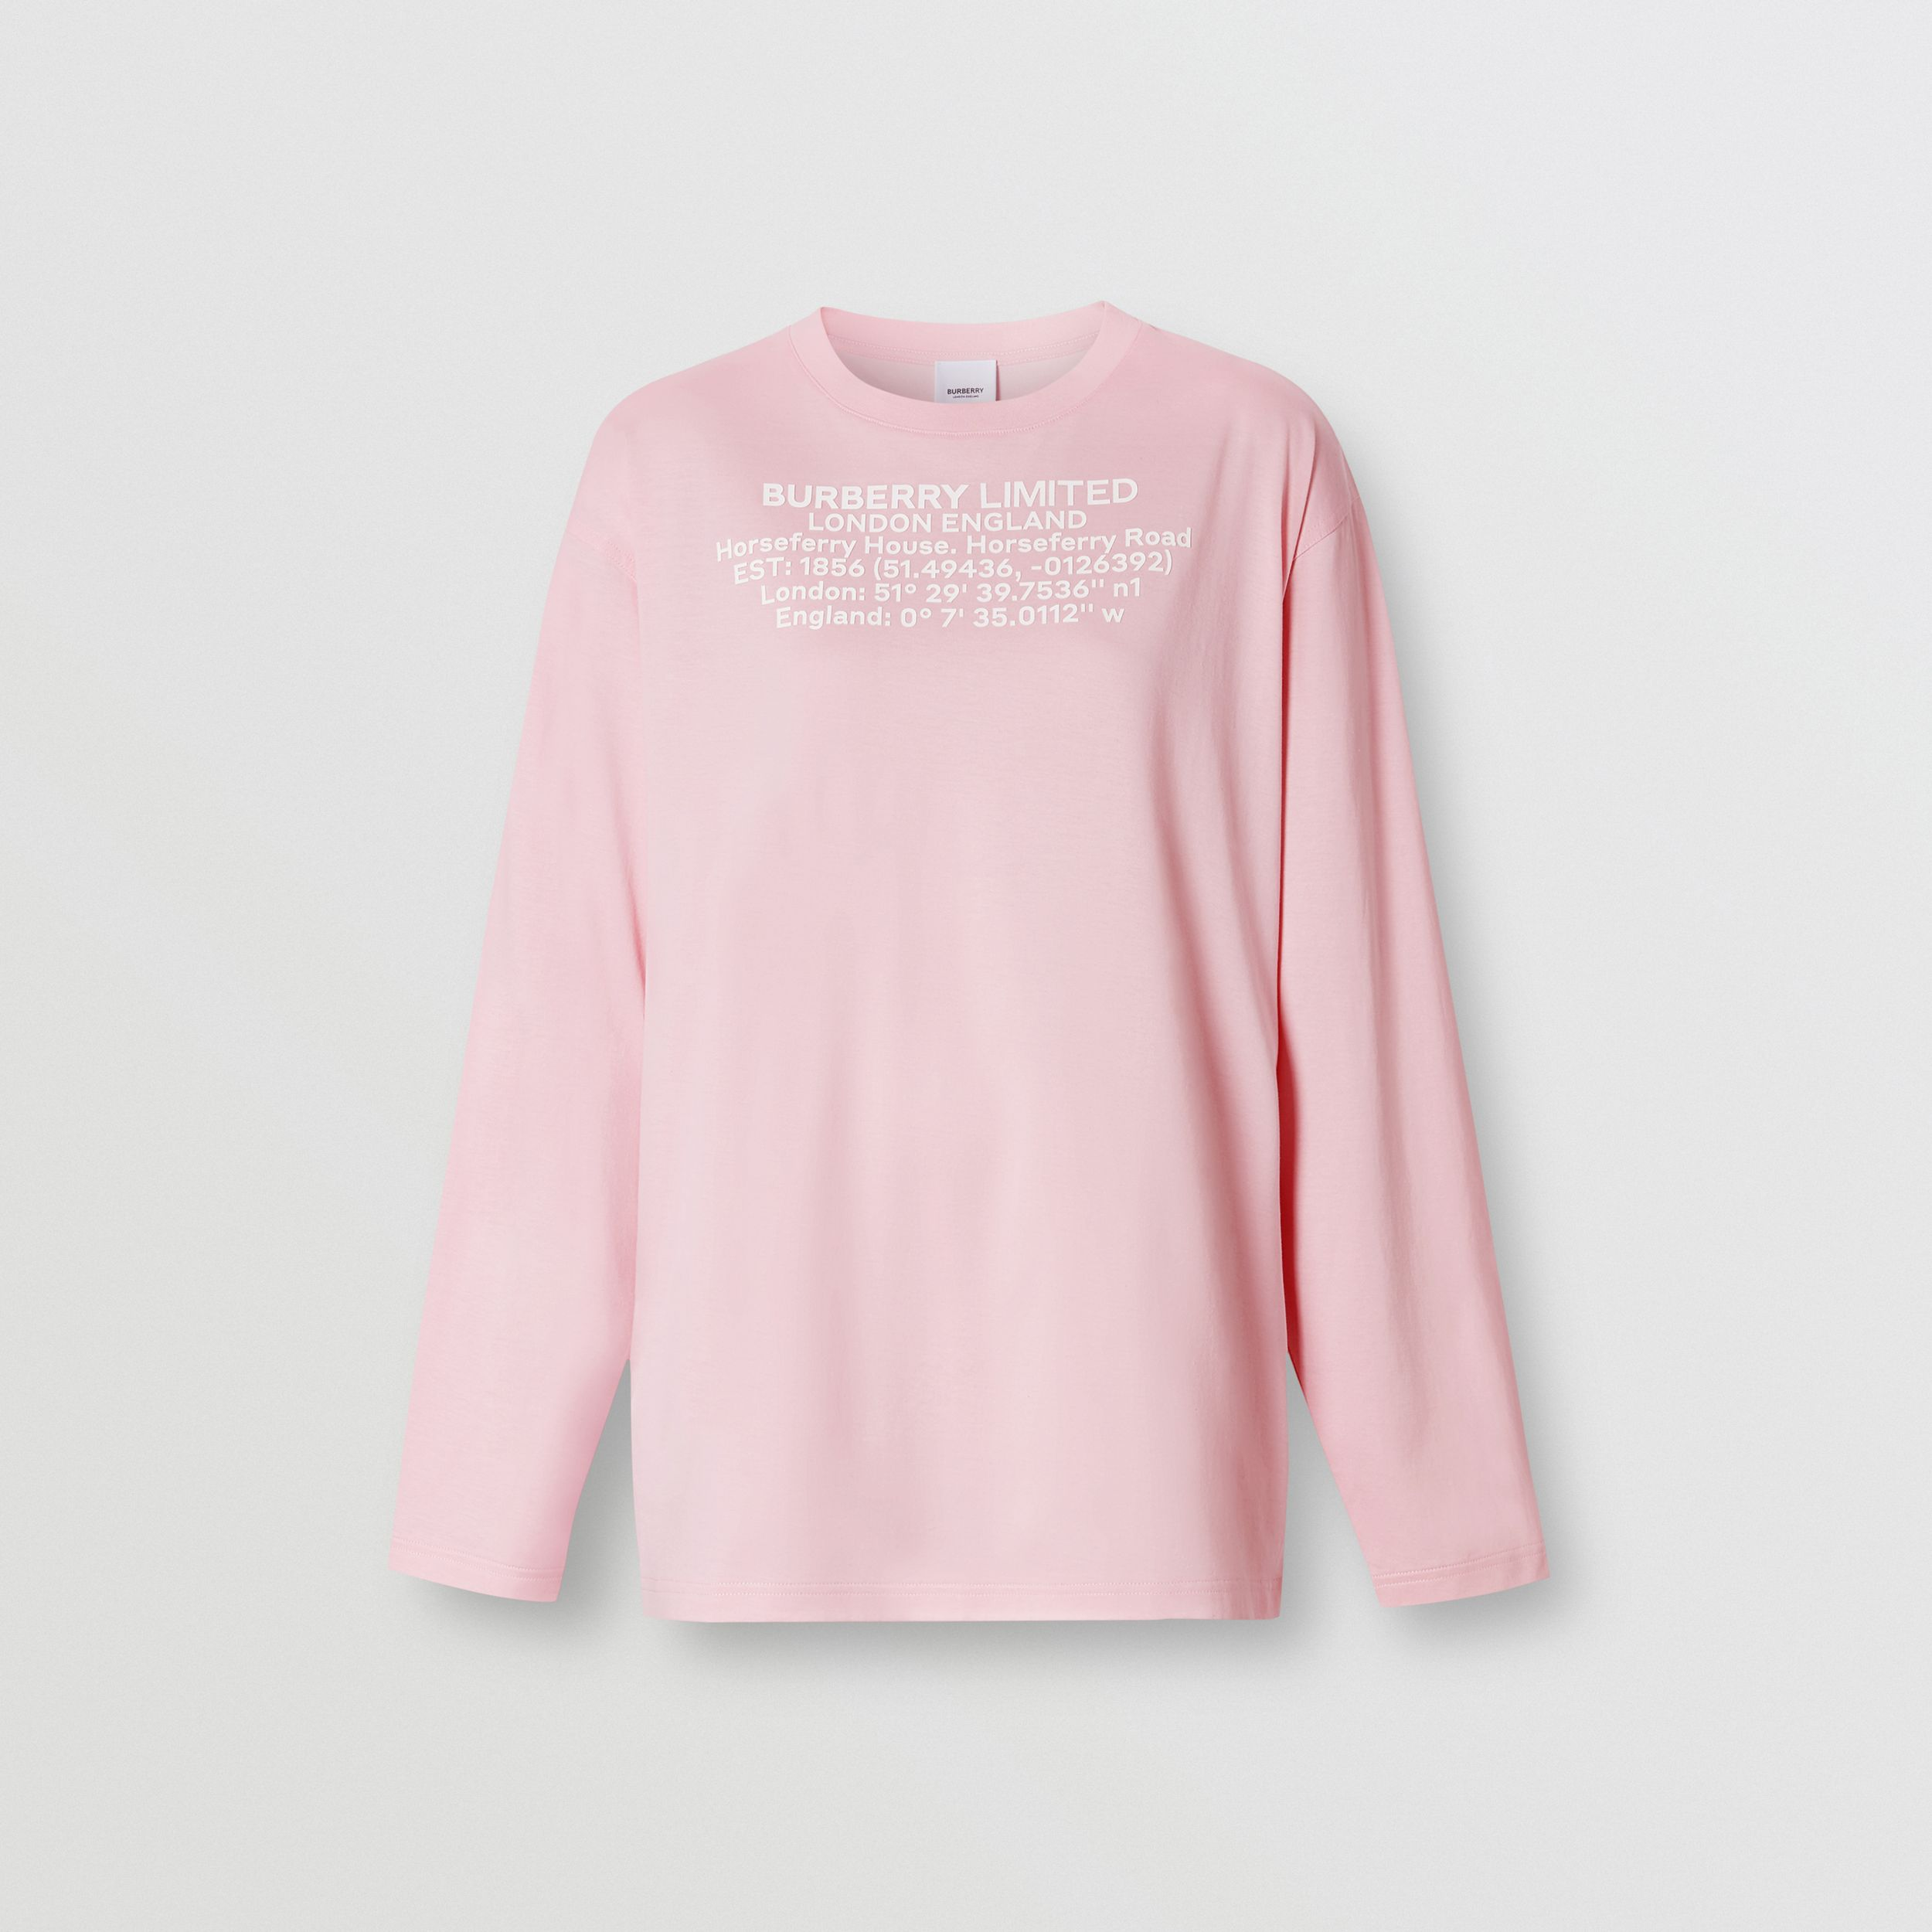 Long-sleeve Location Print Cotton Oversized Top in Candy Pink - Women | Burberry United Kingdom - 4